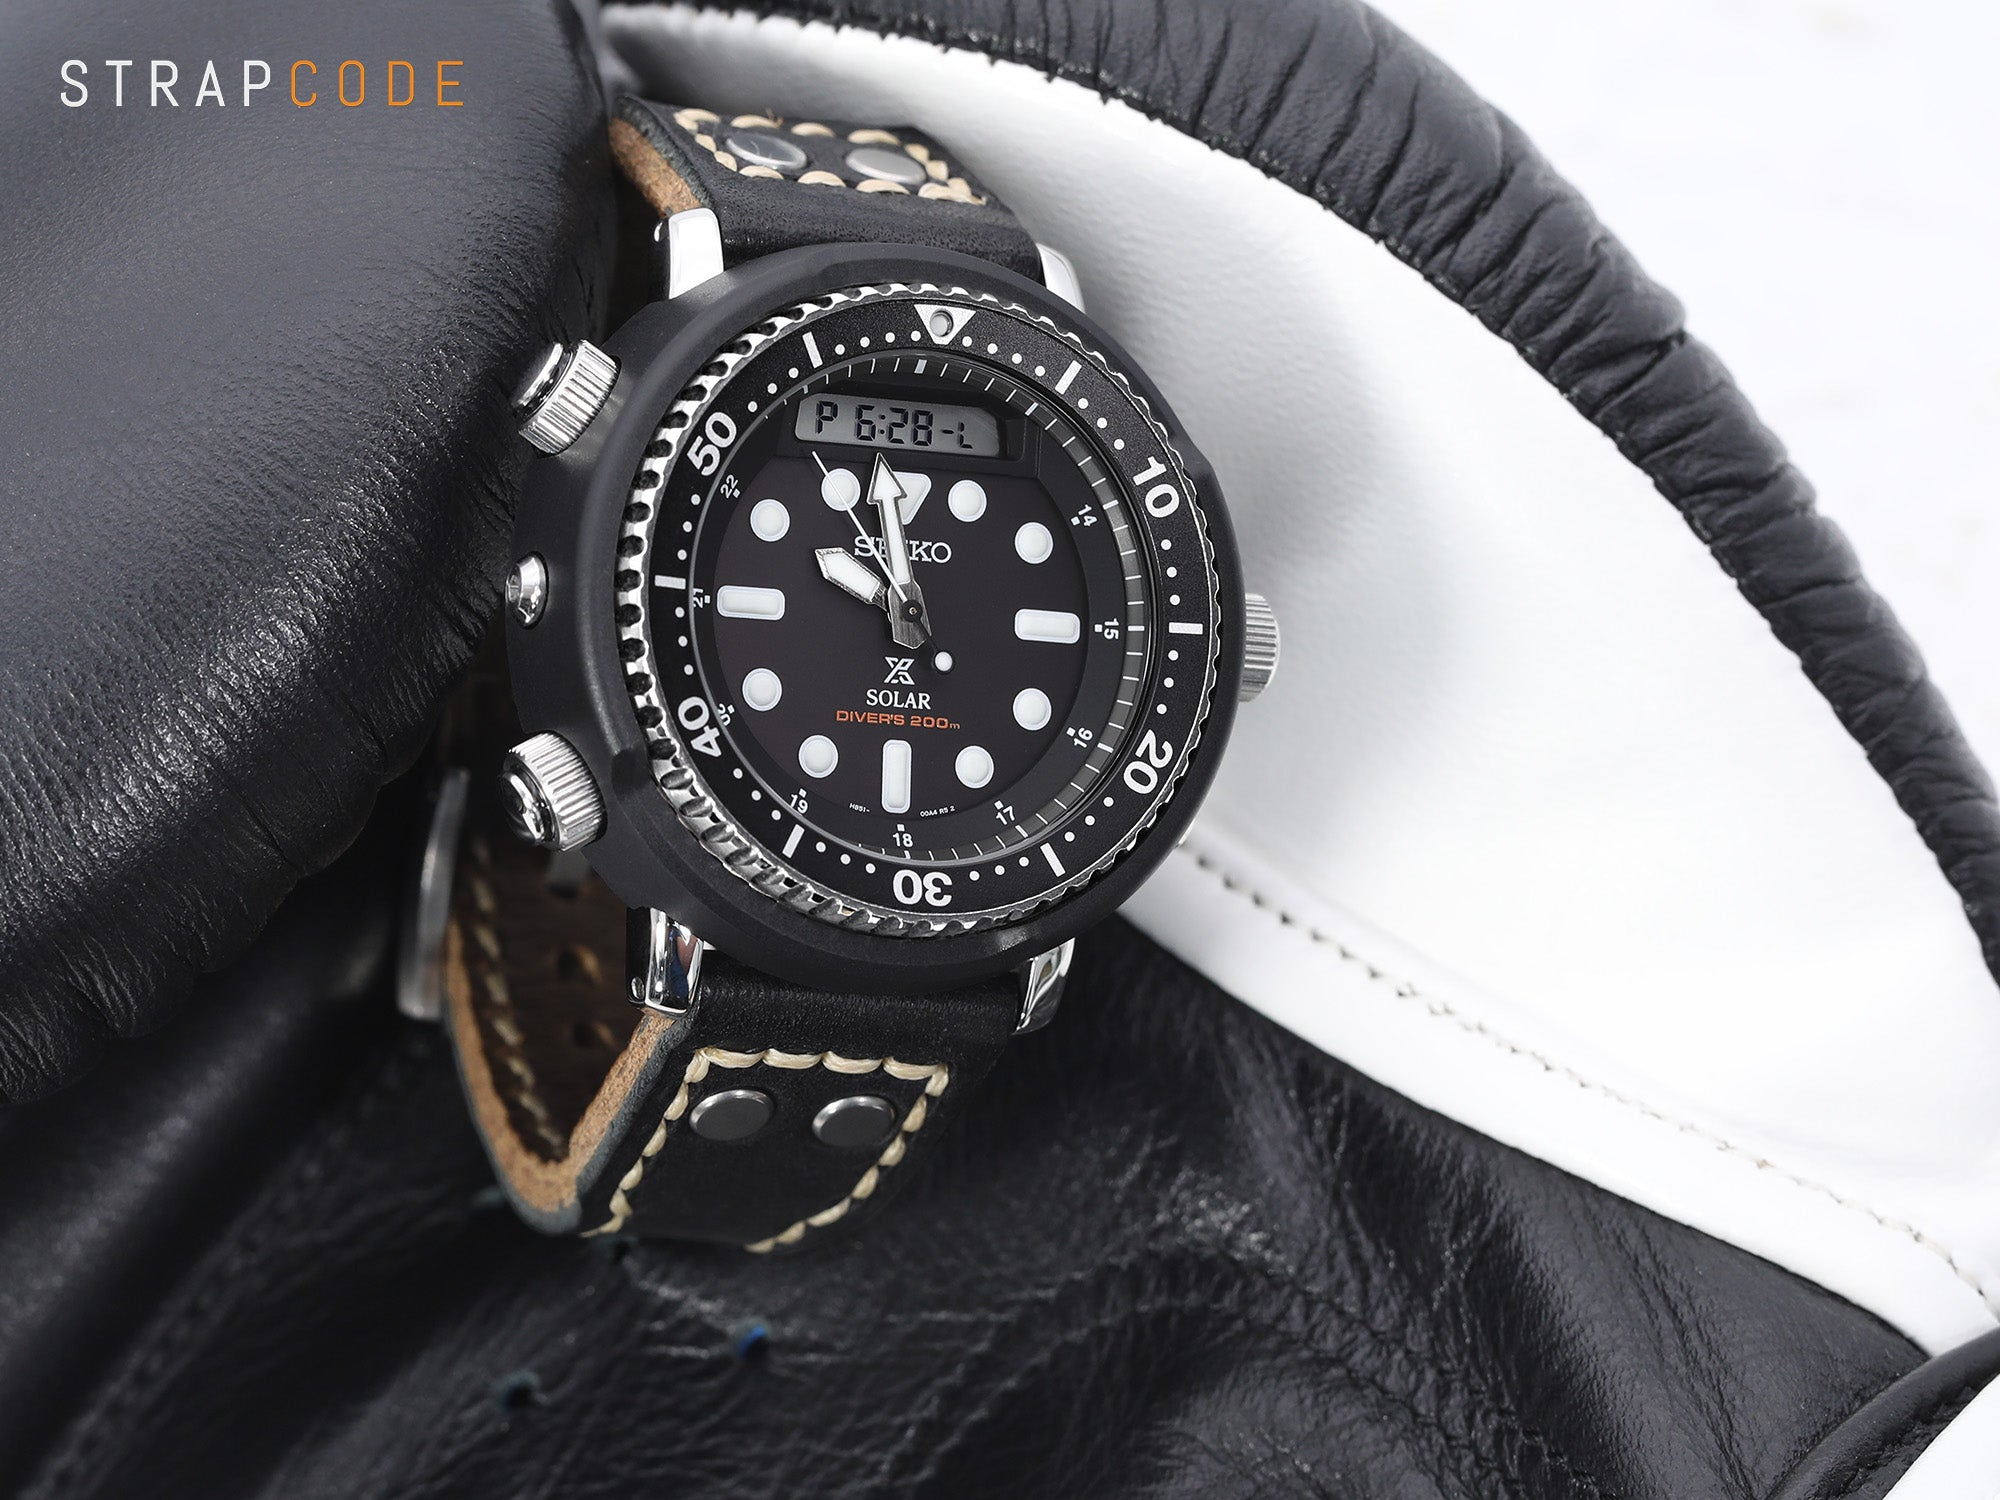 Pull Up Aniline Italian Rivet Leather Watch Strap, by strapcode watch bands